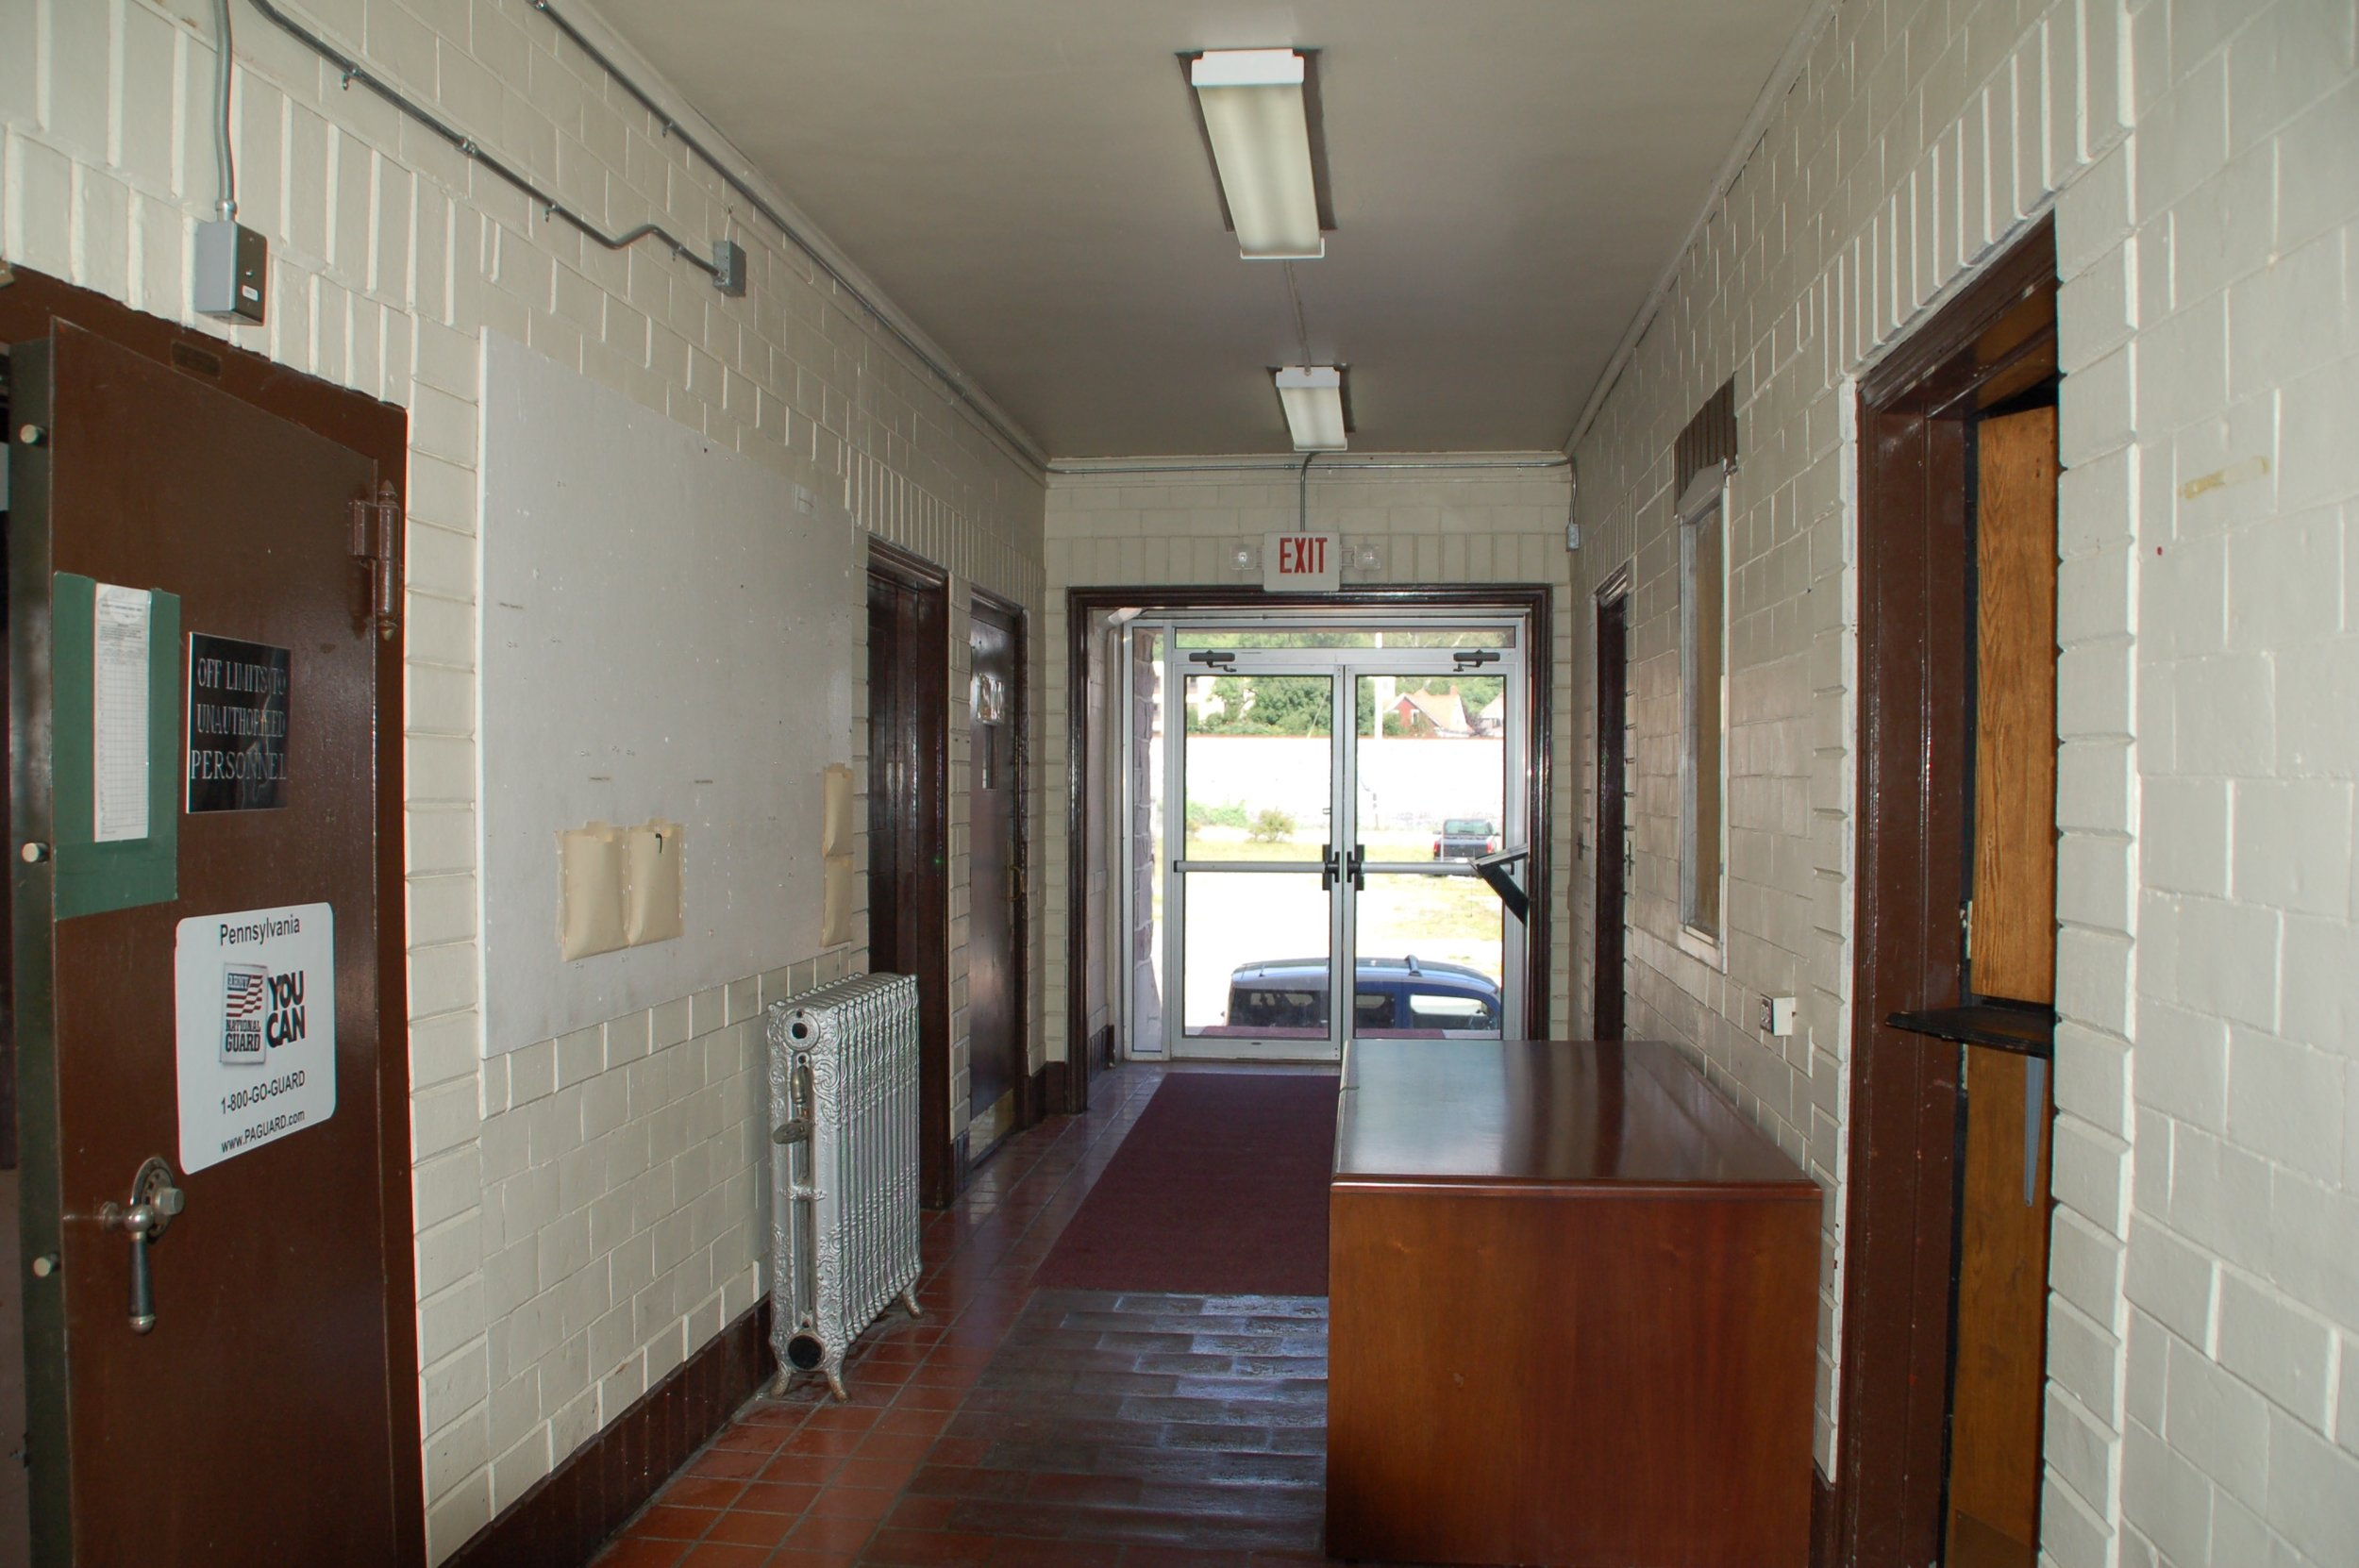 1st floor hallway in the office section of the armory.